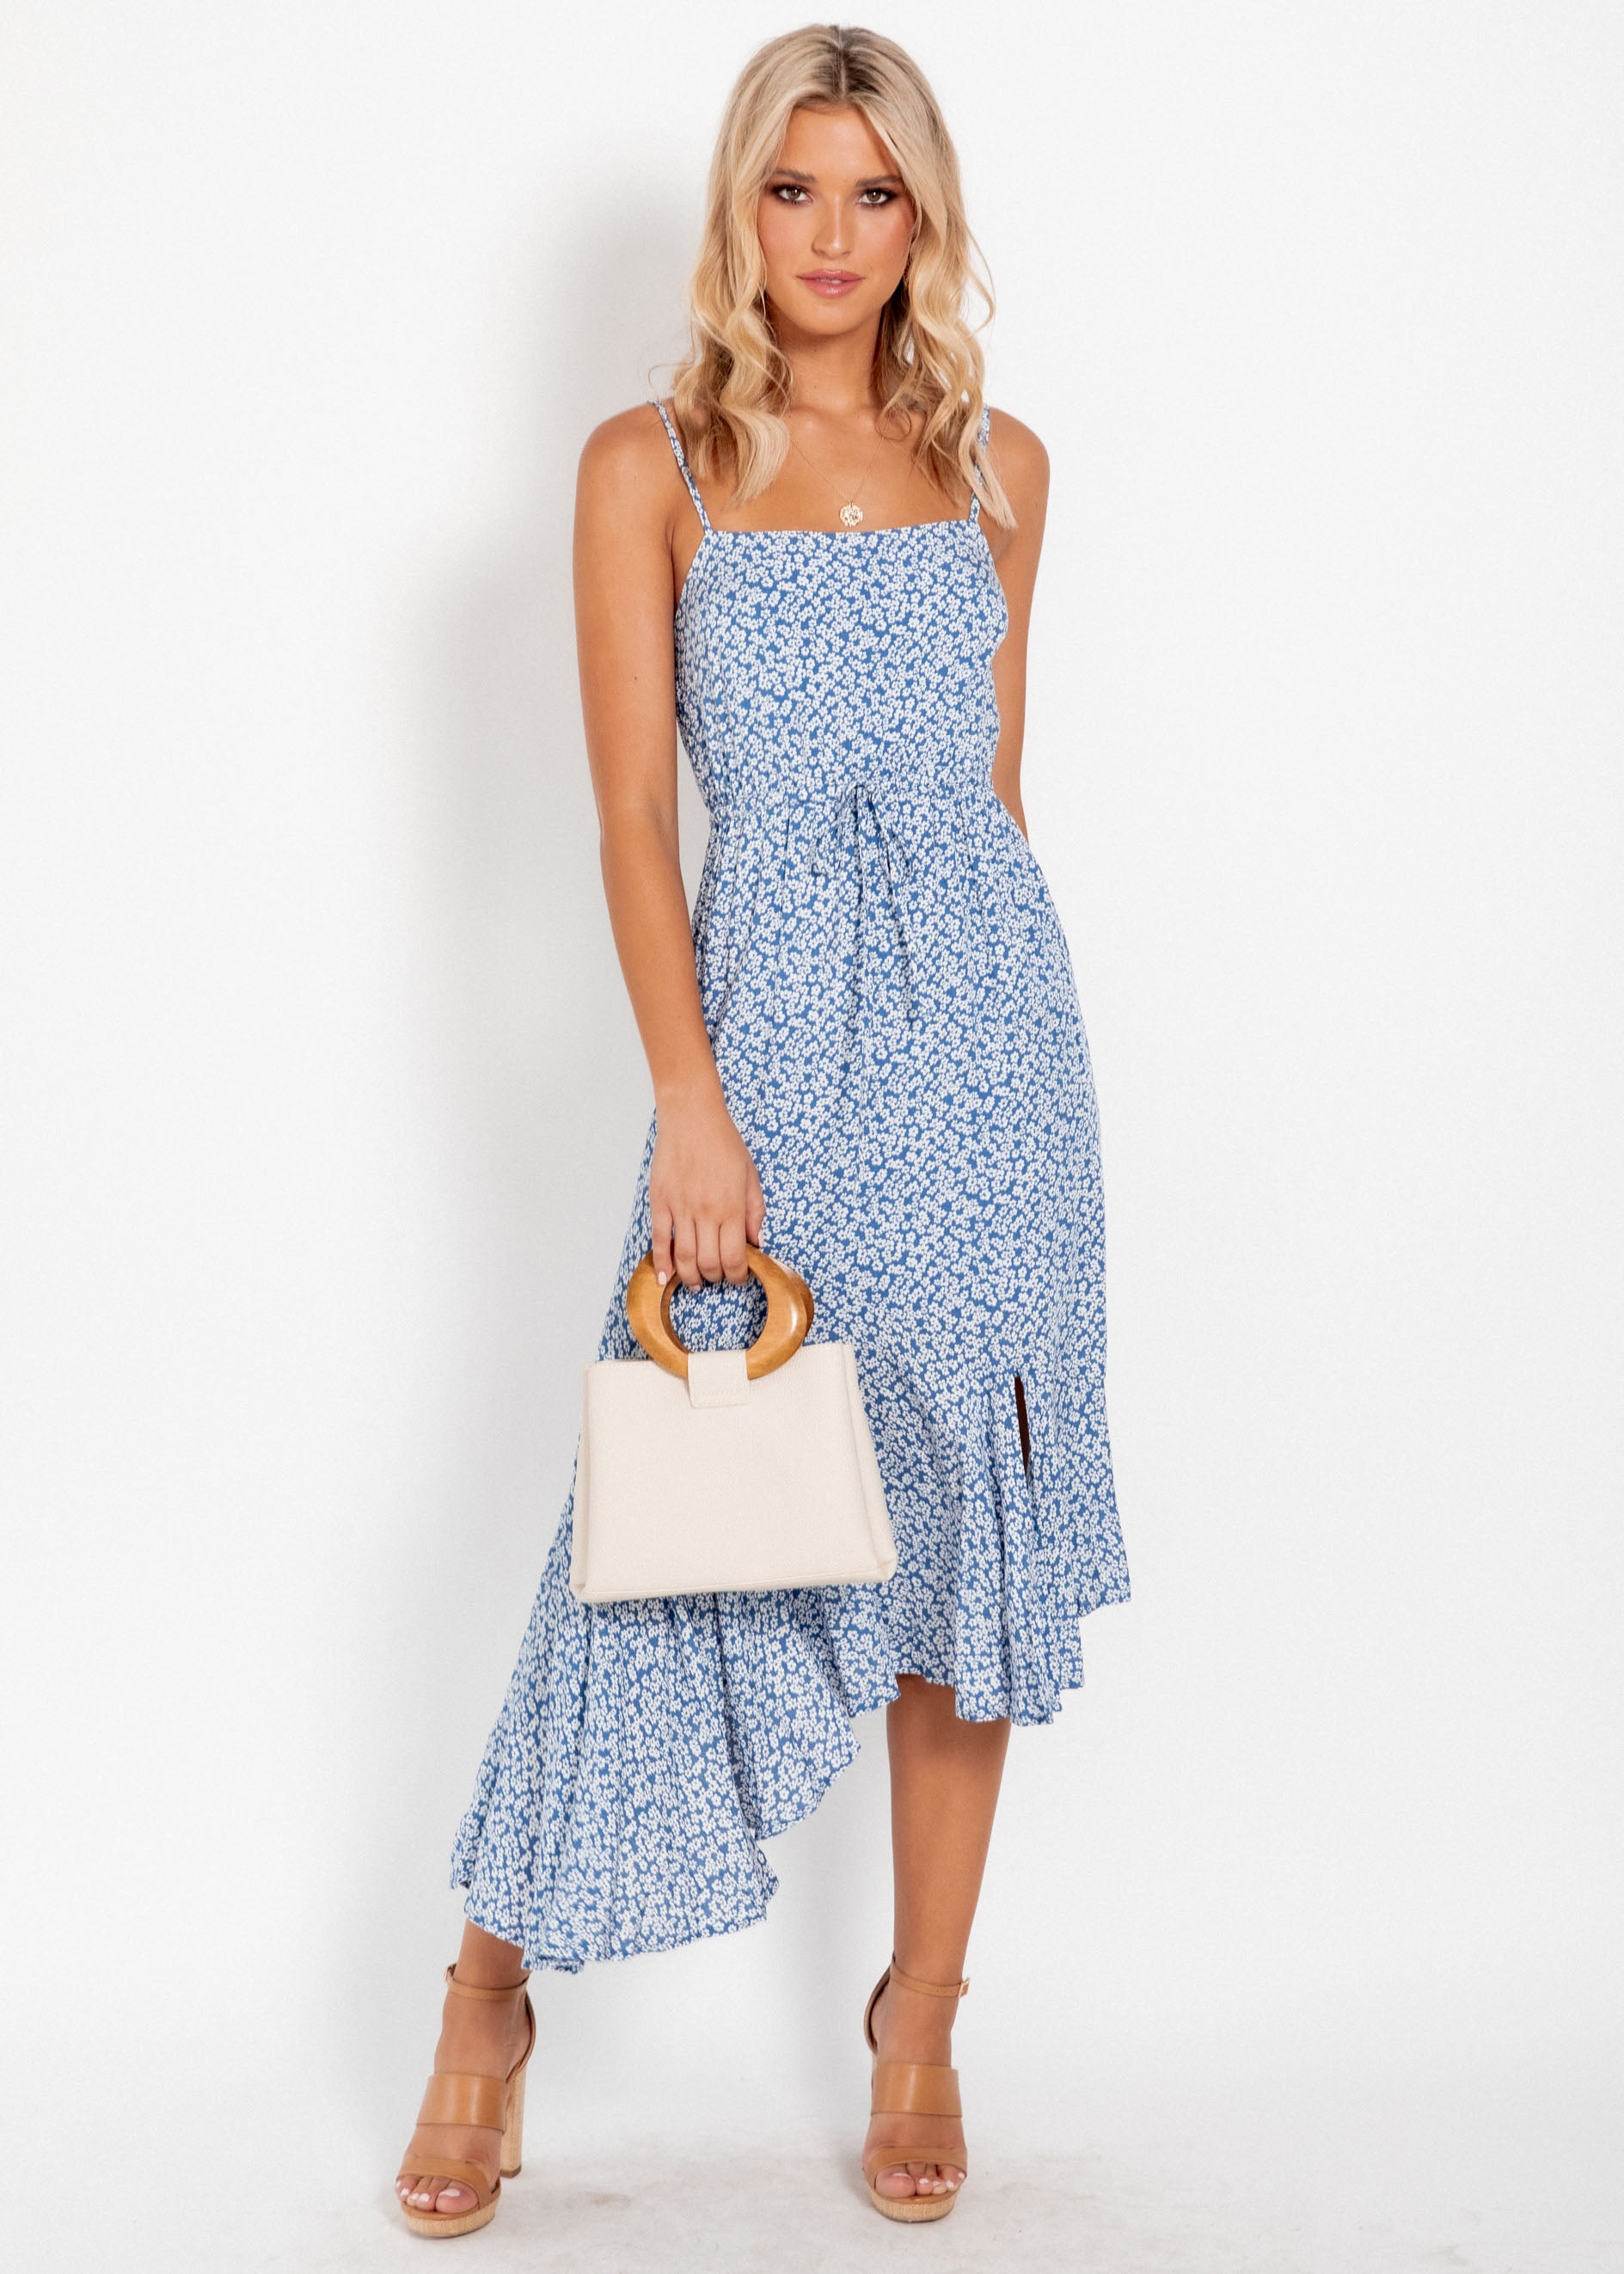 Blair Midi Dress - Blue Floral